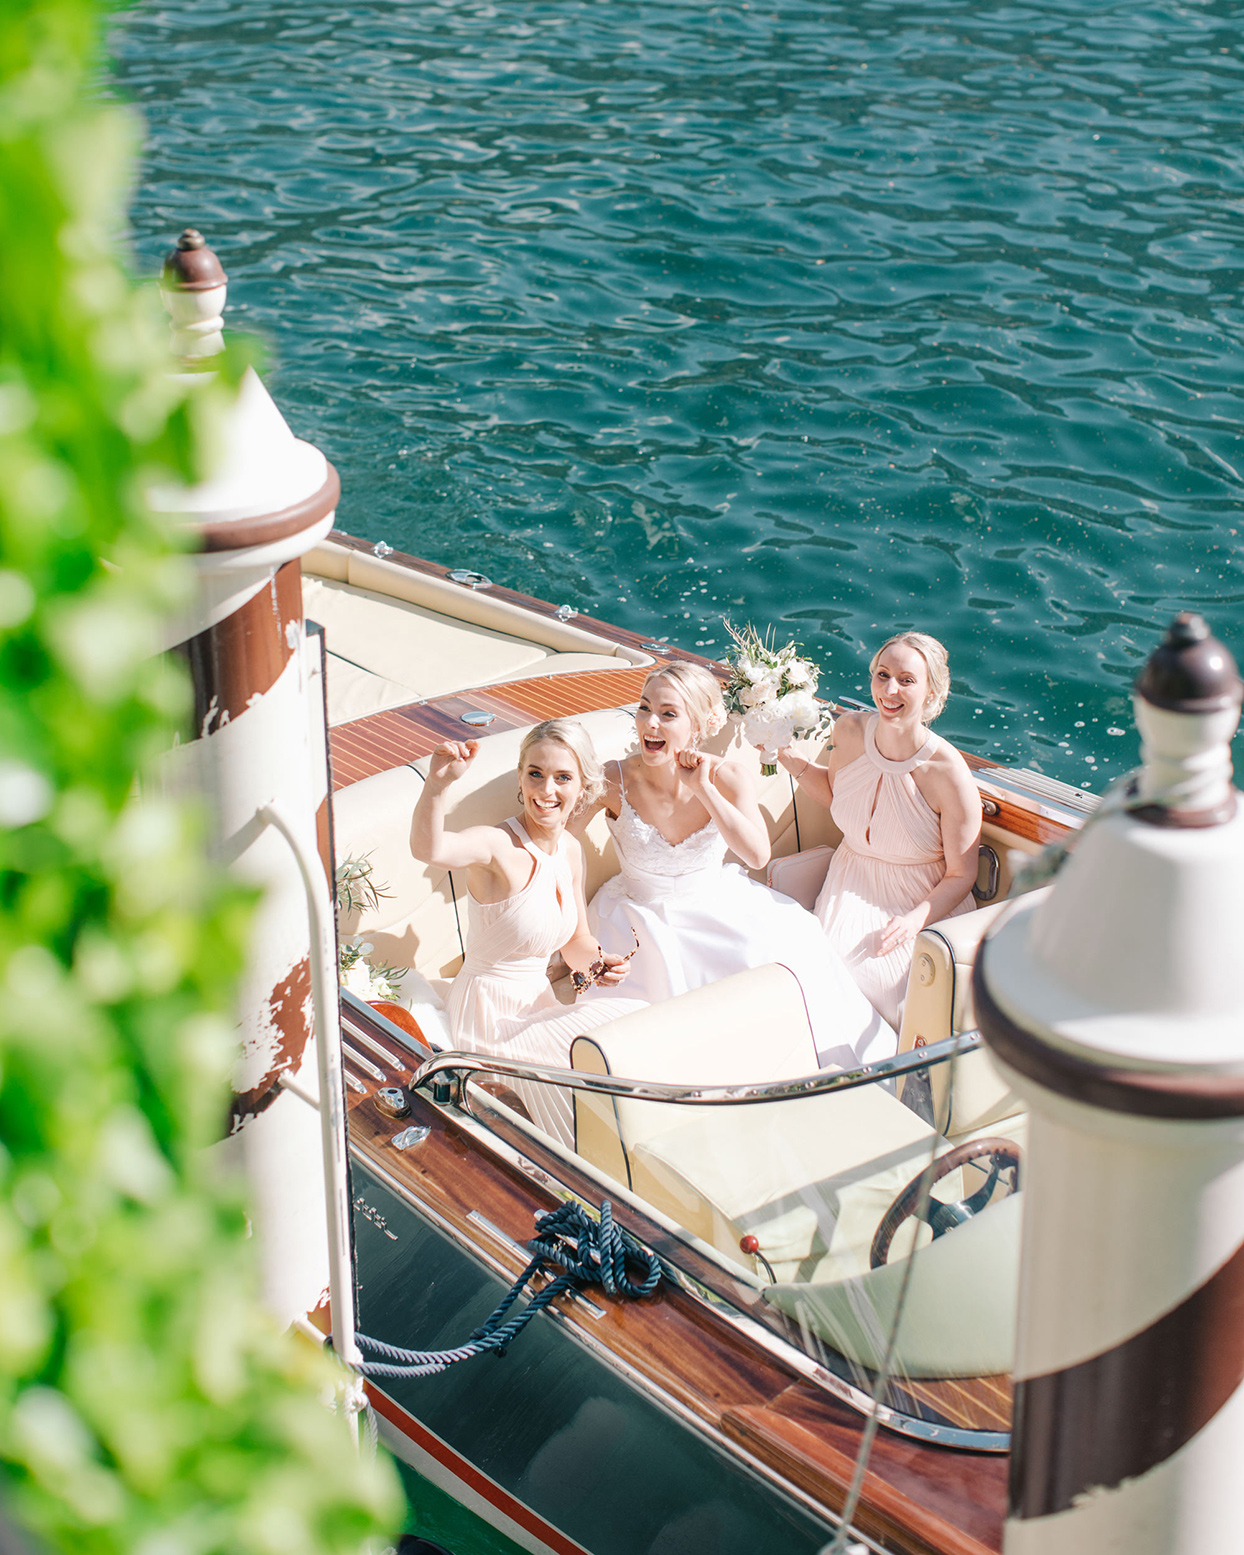 kiira arthur wedding bridesmaids in boat